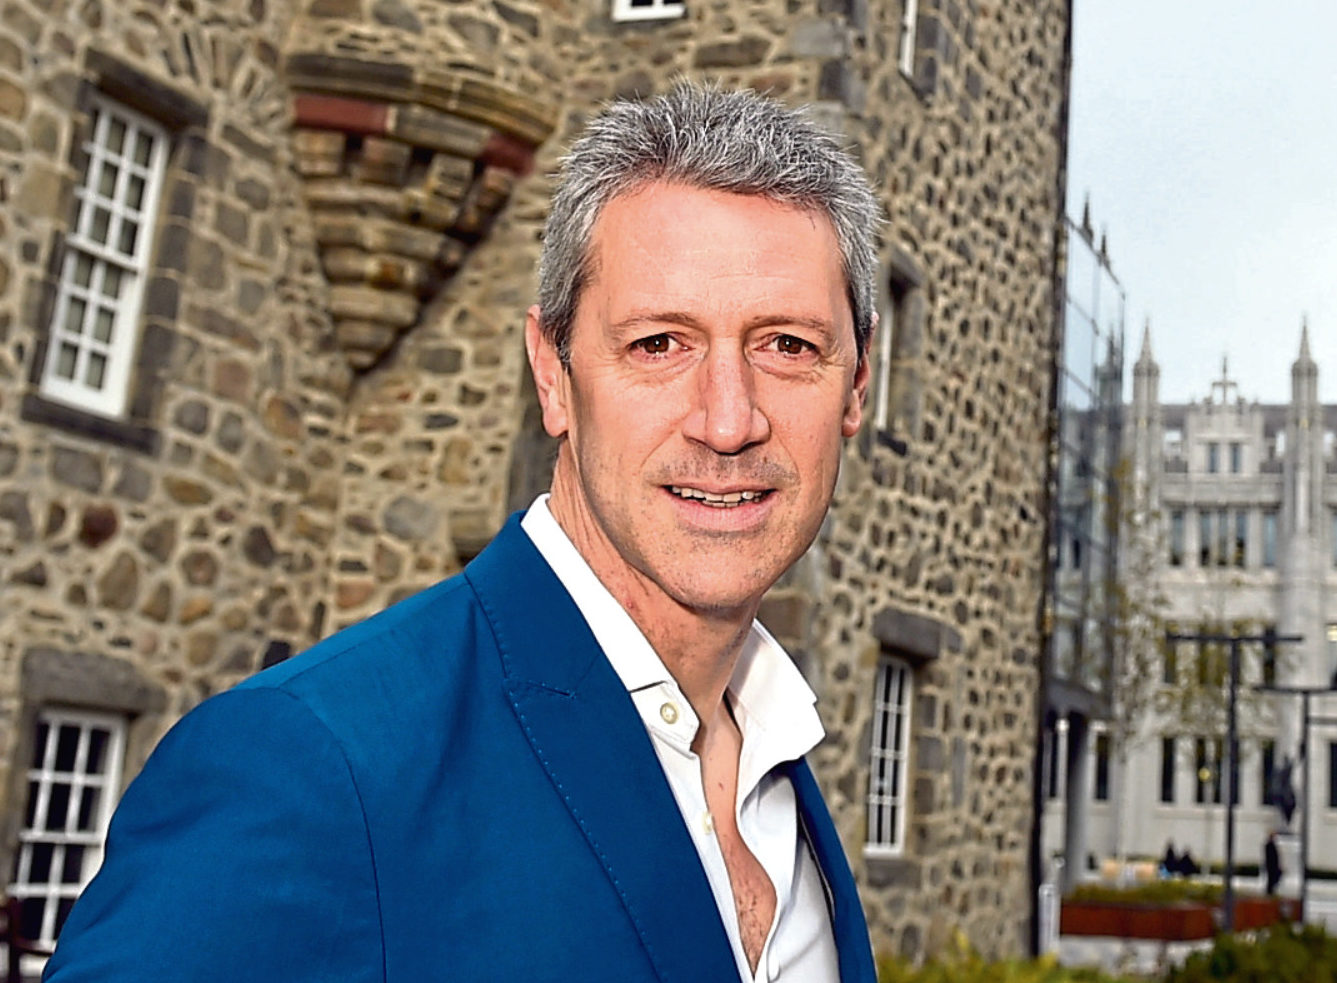 Chris Foy, head of VisitAberdeenshire